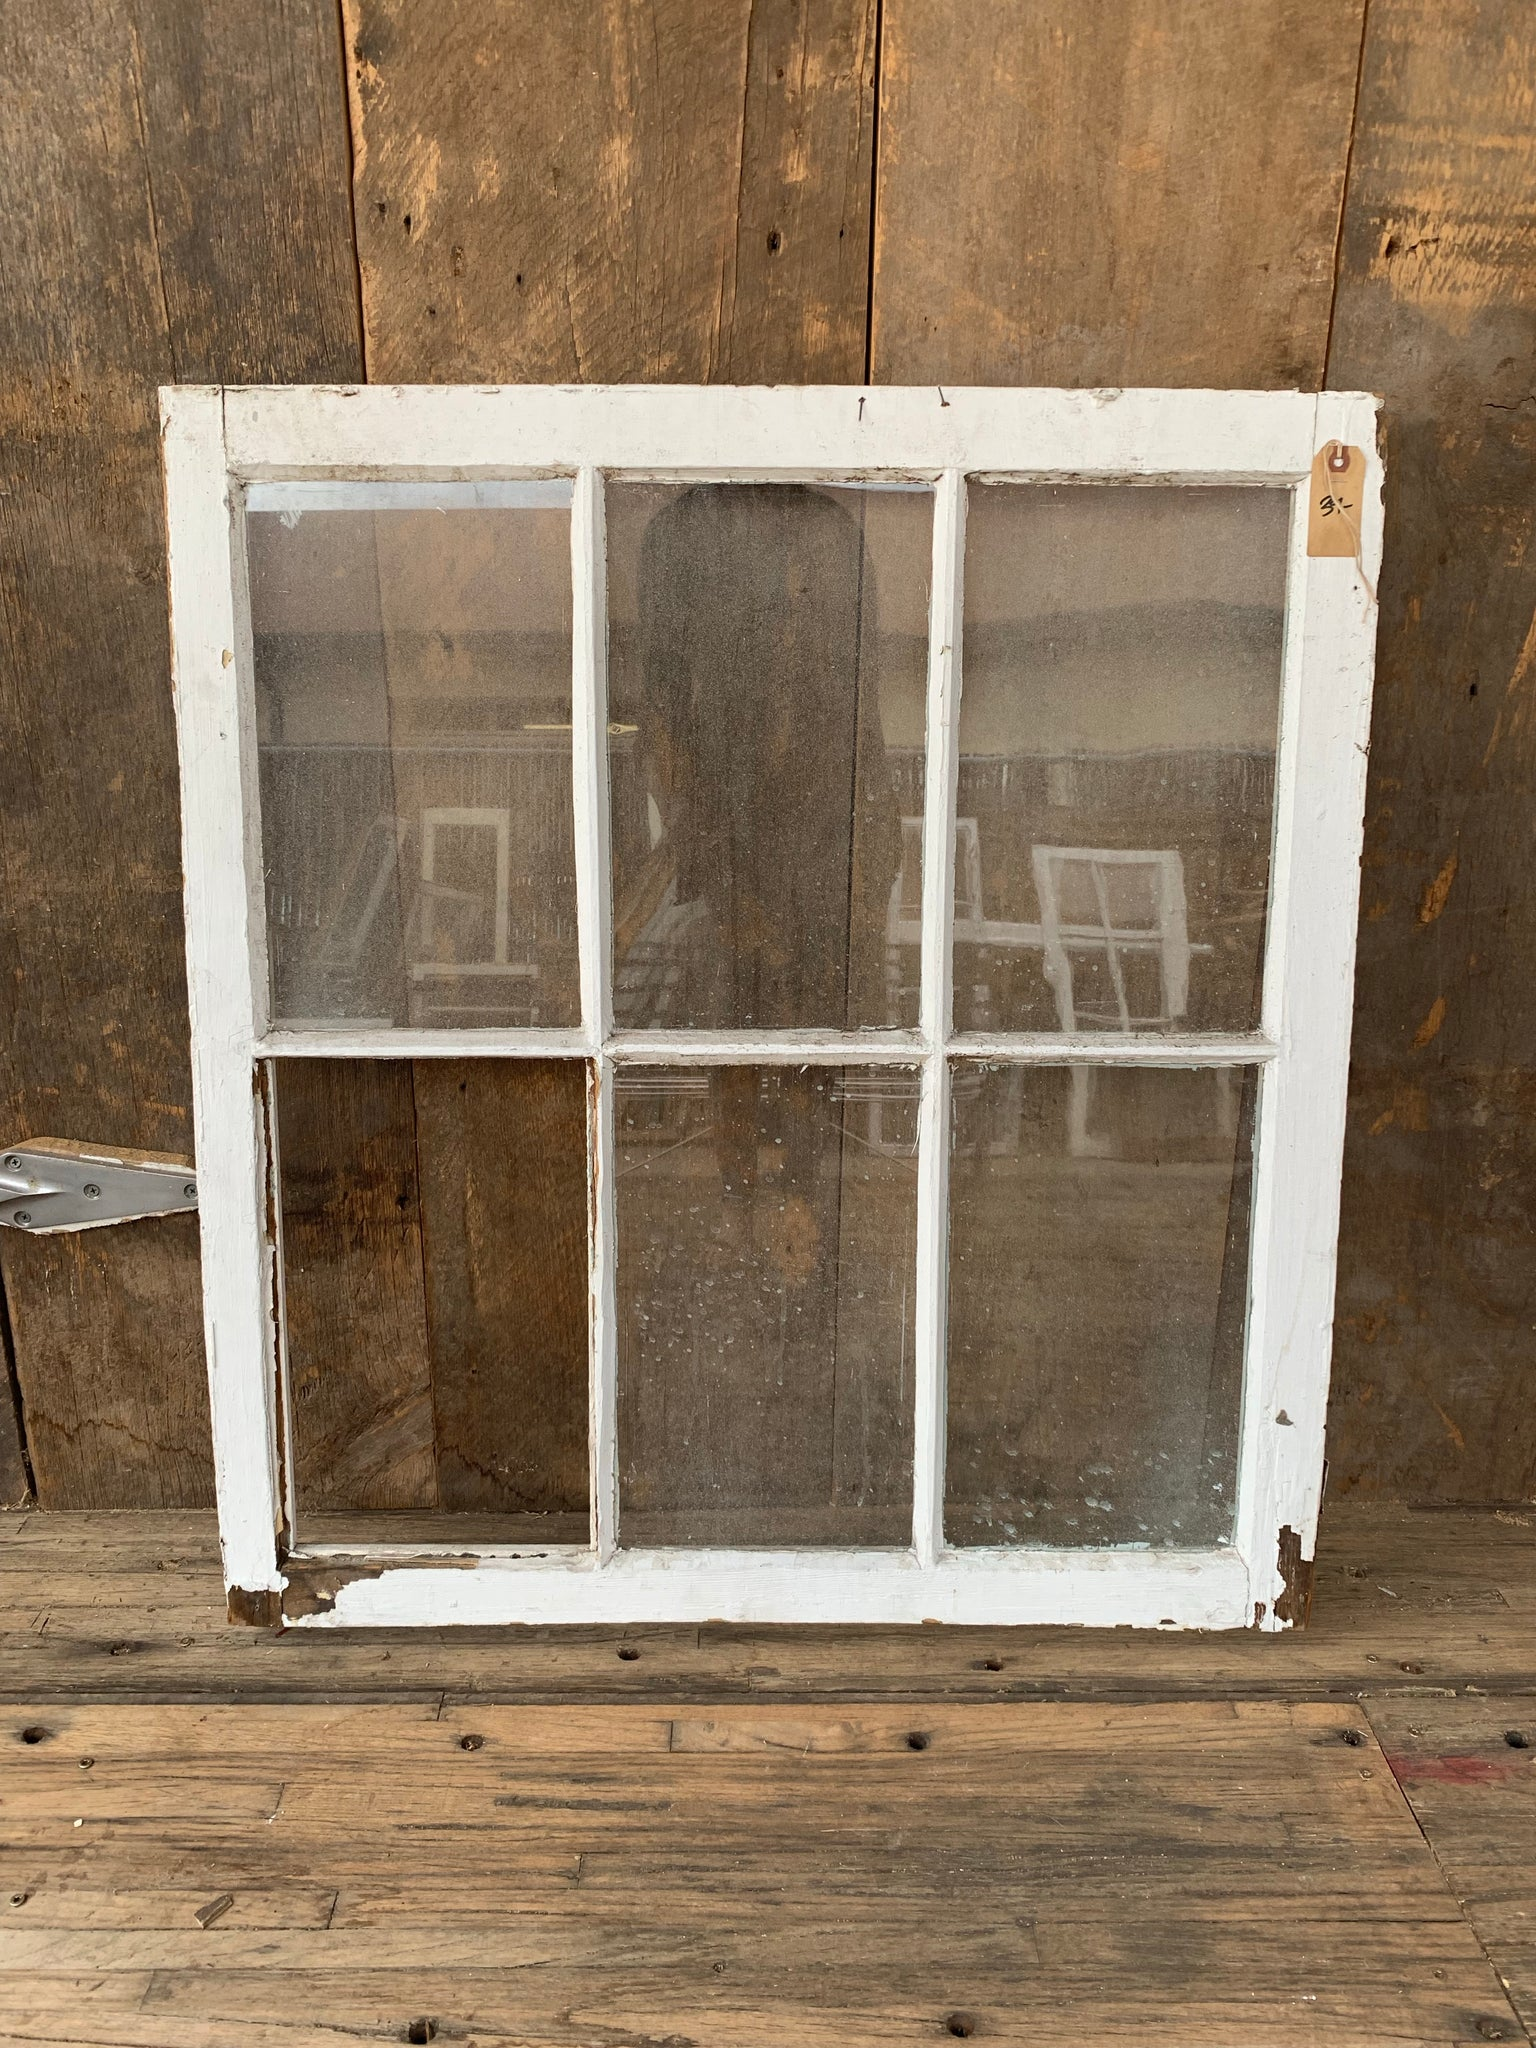 "Antique Six Pane Window 35 1/4"" x 31 1/4"""